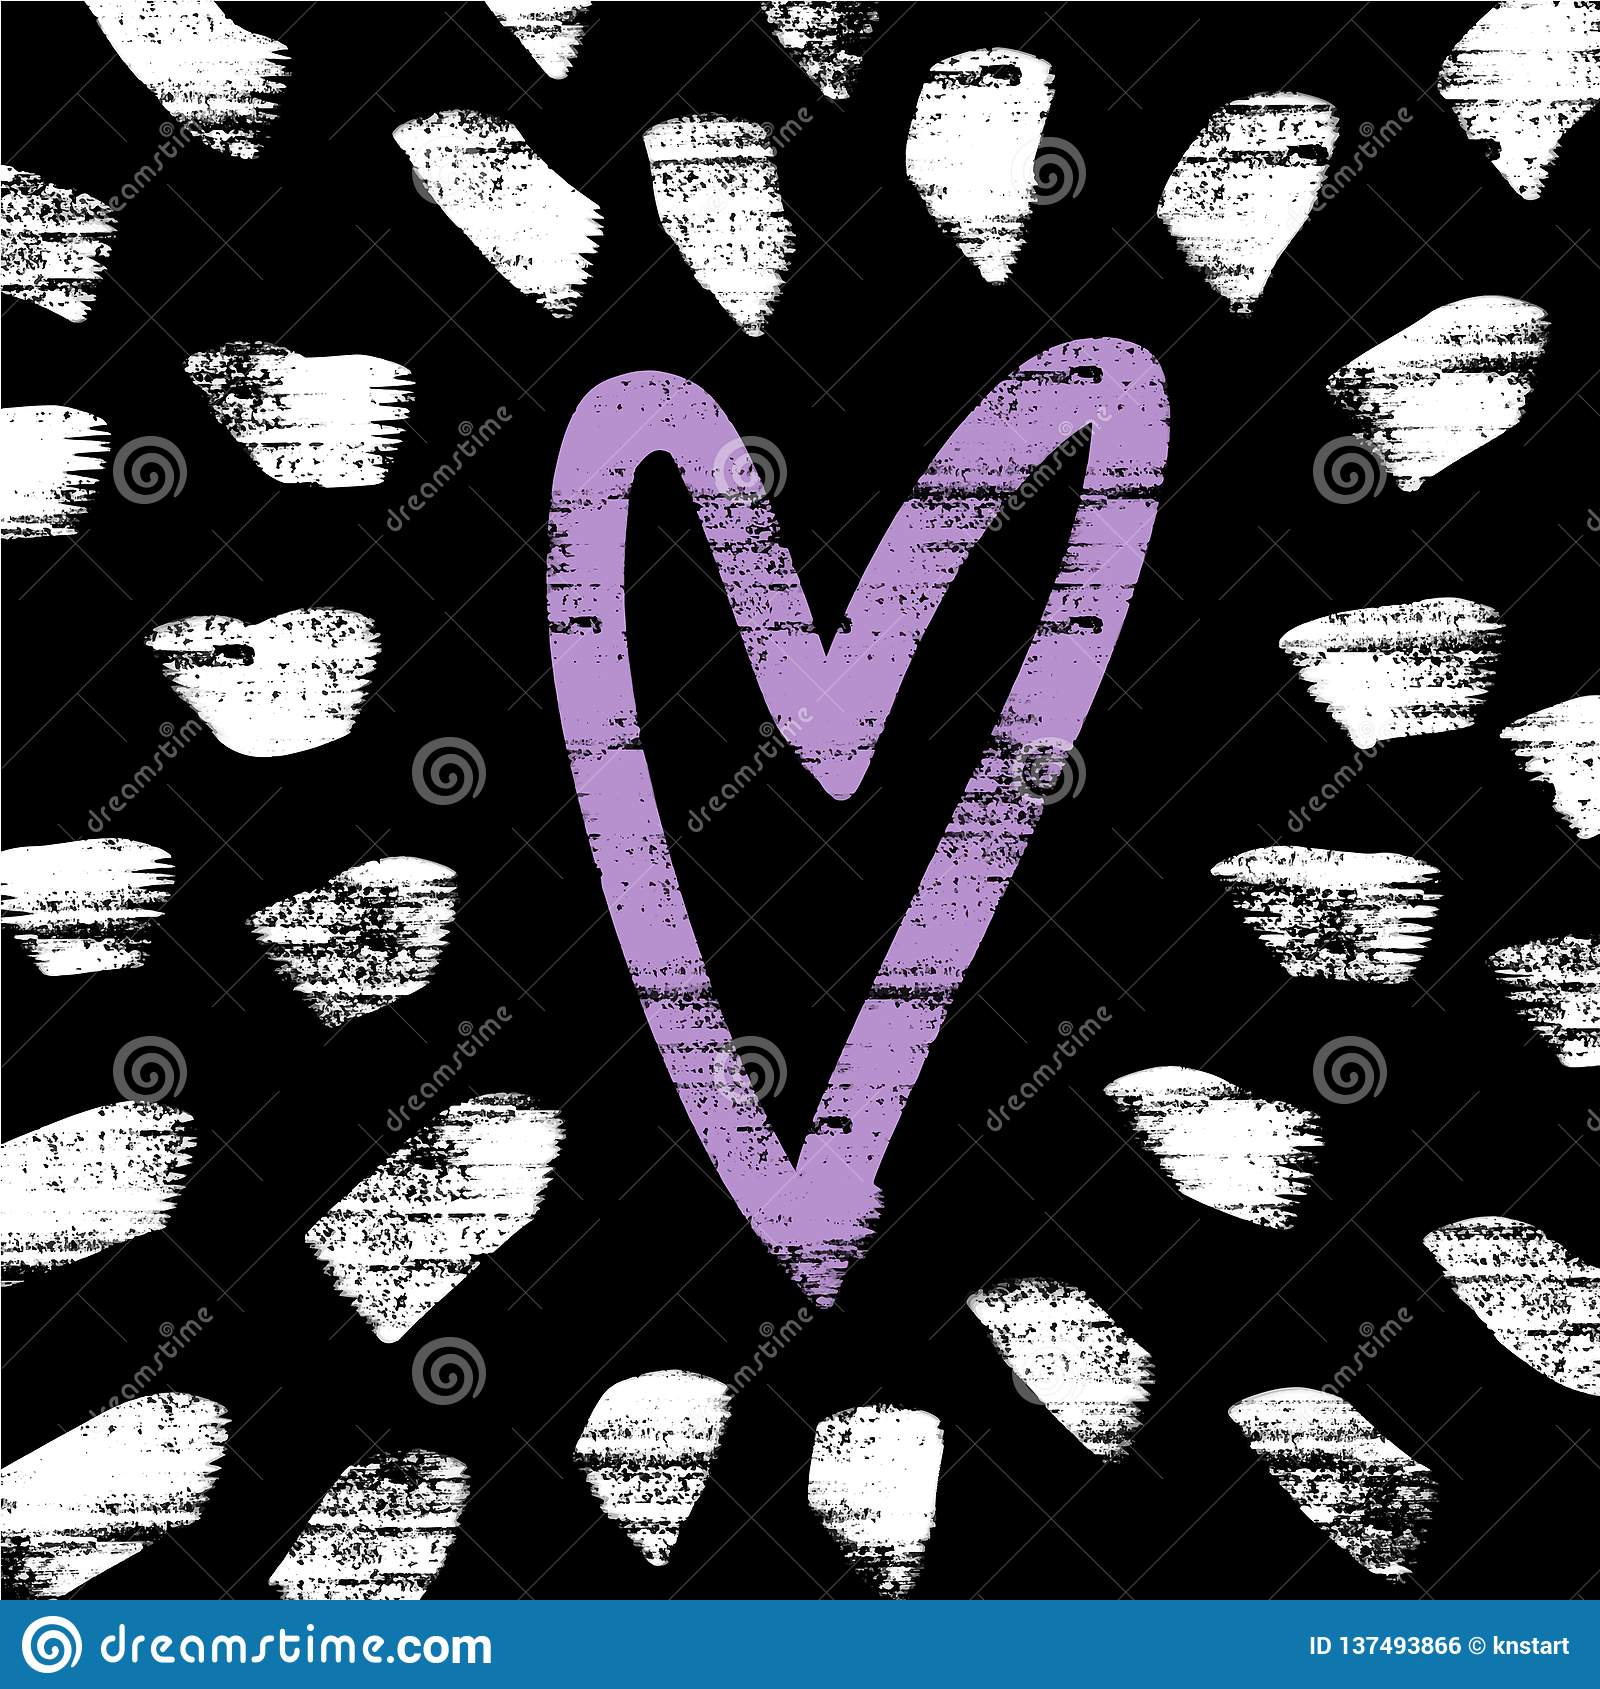 Vector and jpg image, clipart. Background with heart and decor elements